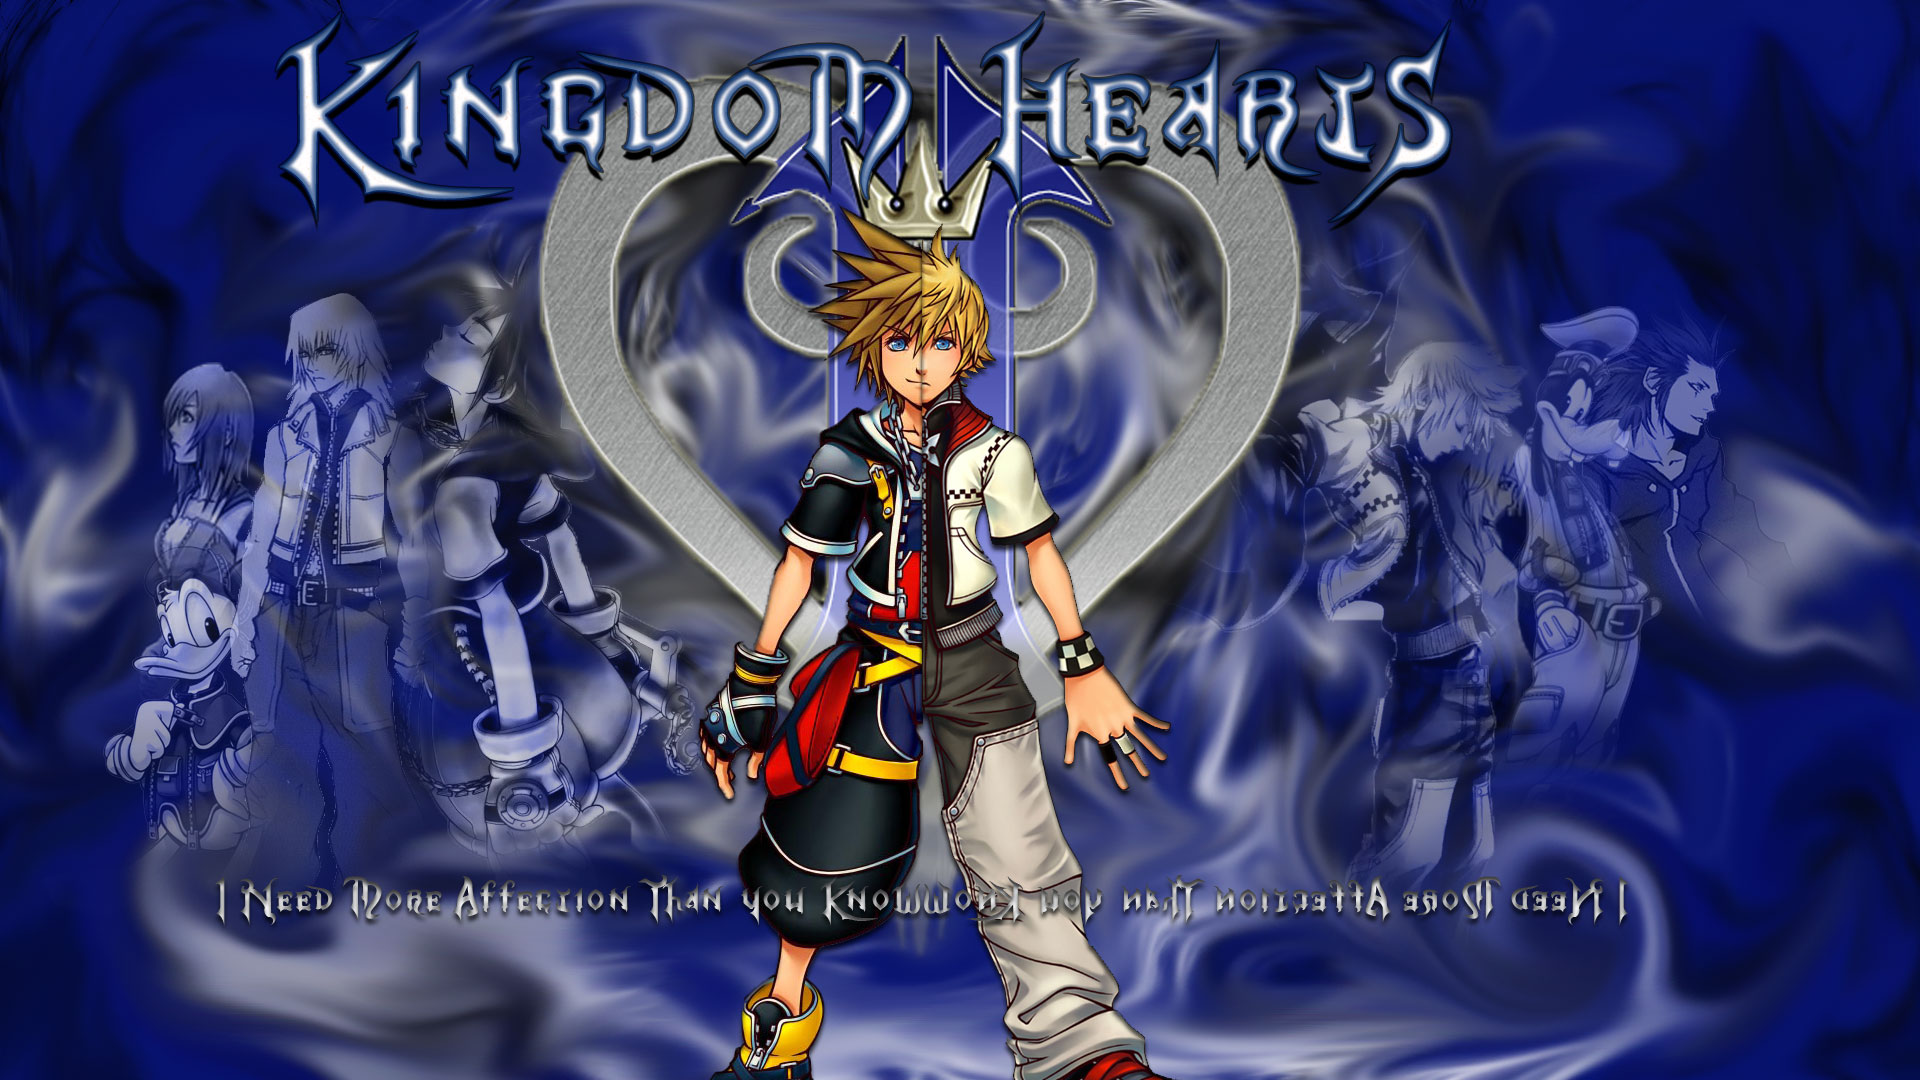 Kingdom Hearts Background wallpaper 145152 1920x1080